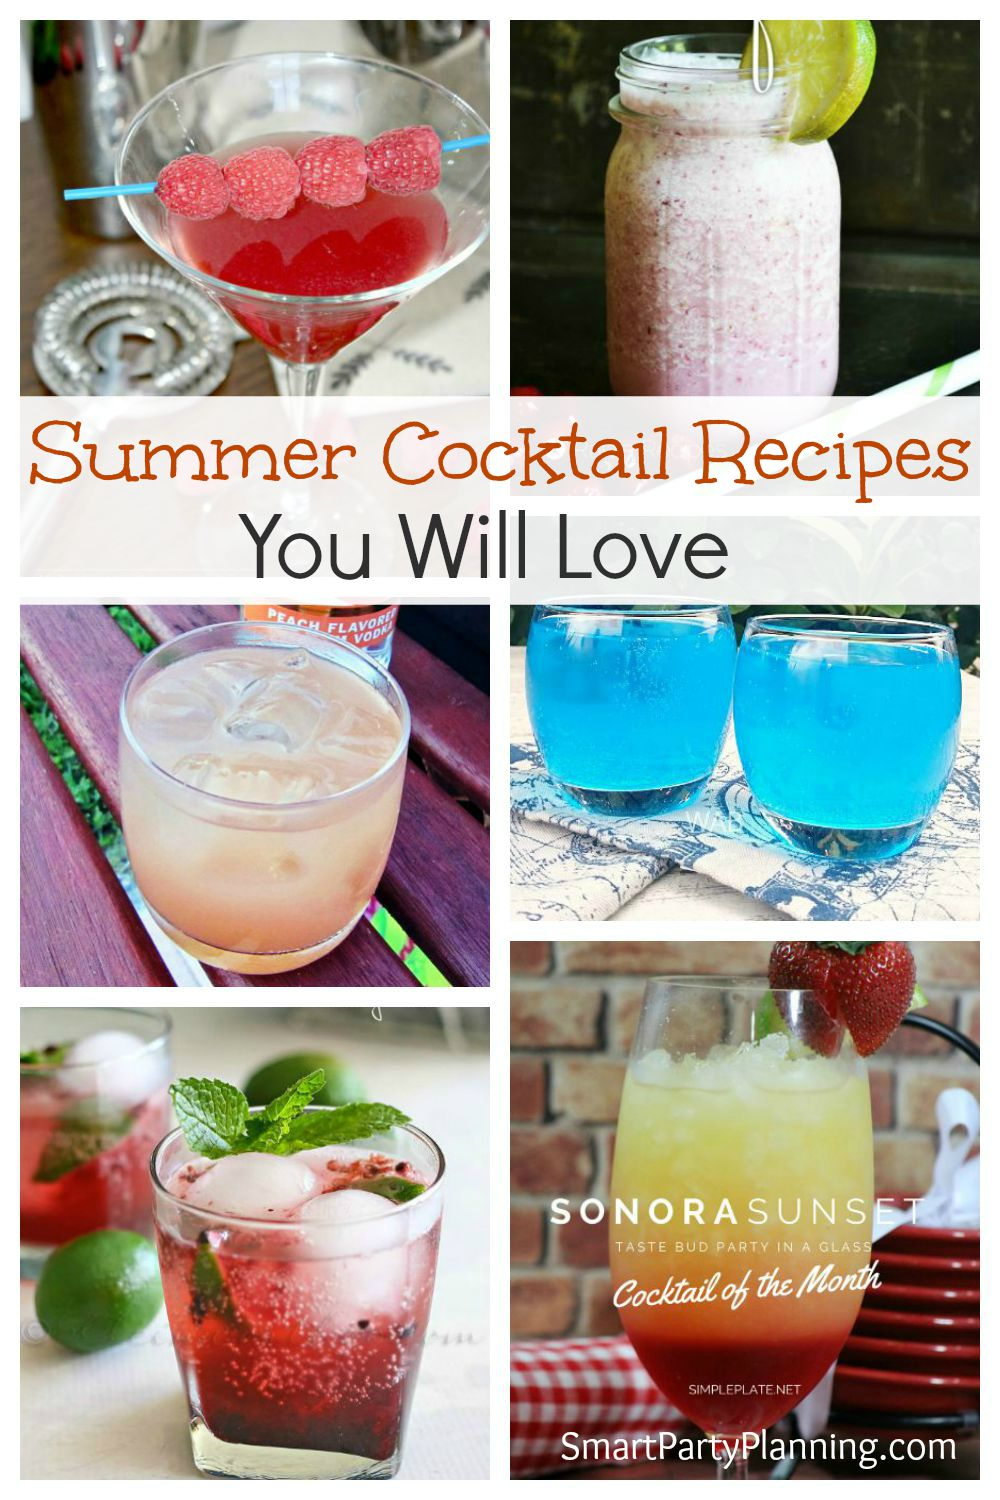 6 summer cockail recipes you will love for Easy cocktail recipes for parties